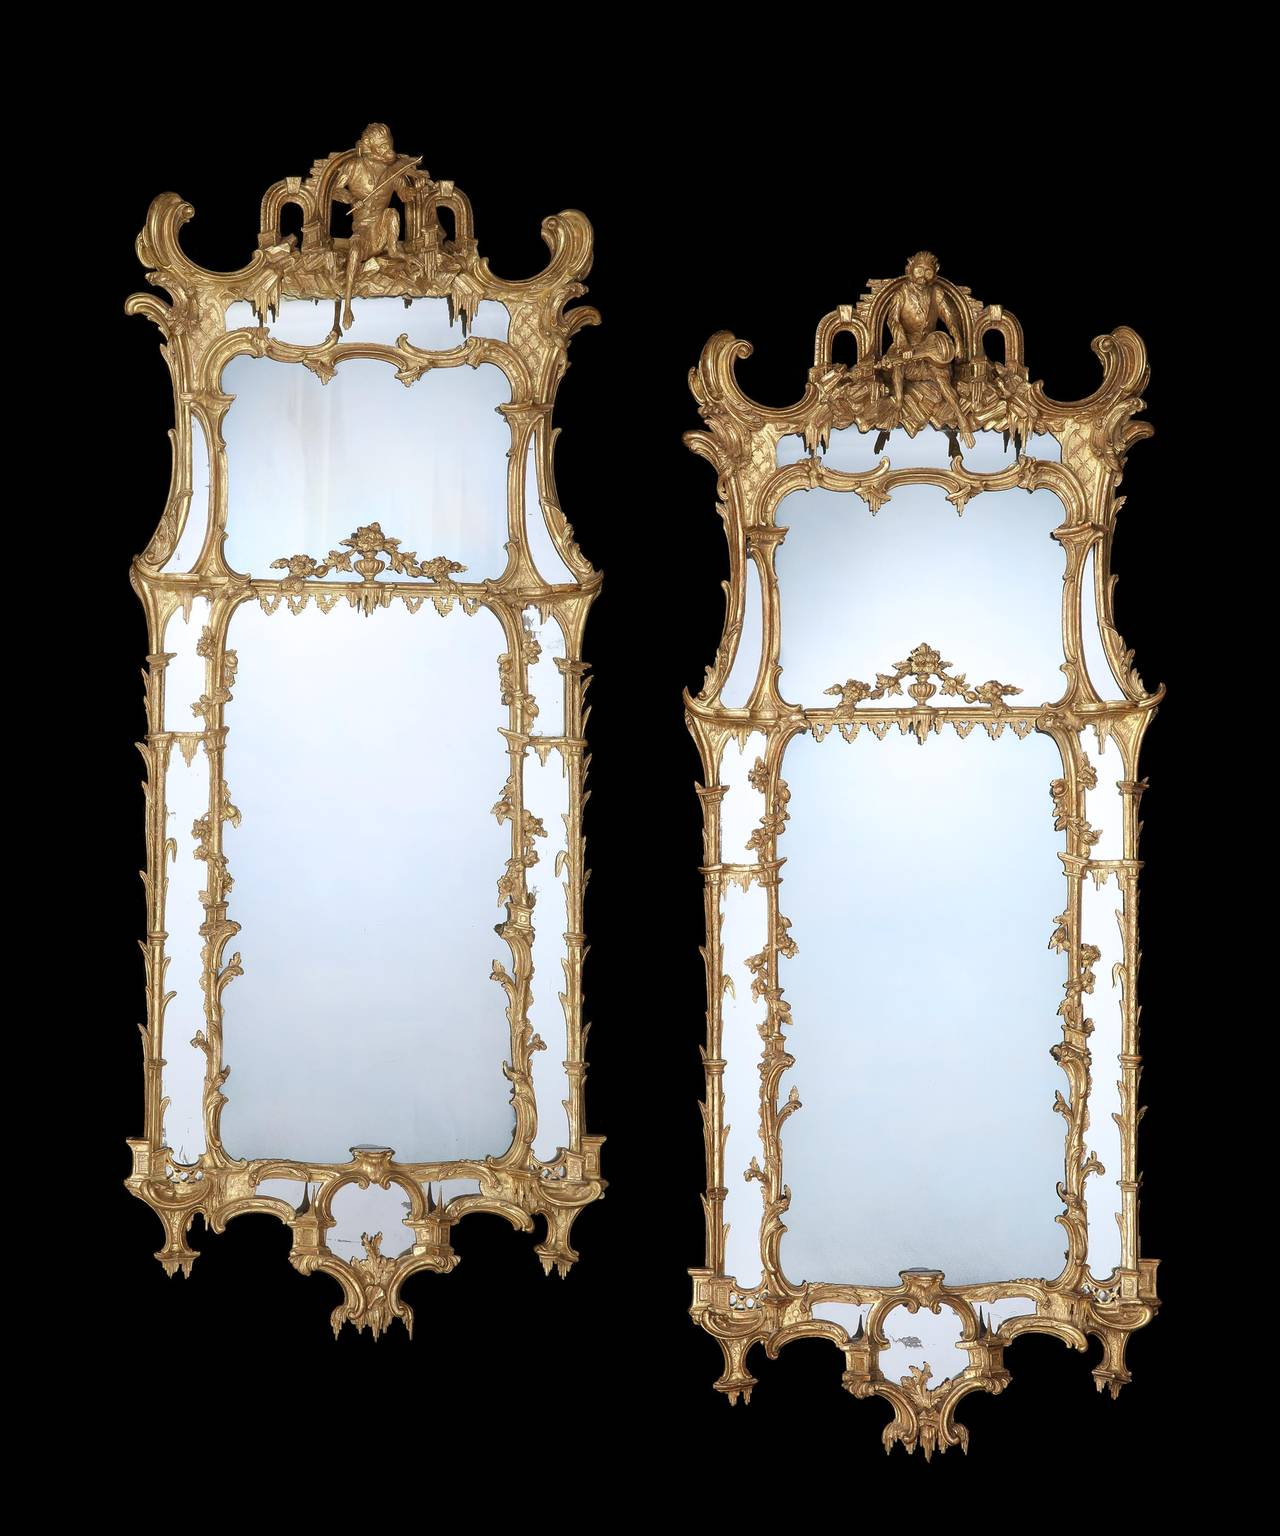 A Pair of George II carved gilt-wood Pier Glasses in the manner of Matthias Lock. This pair of mirrors encapsulates the highly imaginative fanciful design of the french picturesque that prevailed in the mid-18th century with the nautilistic palm